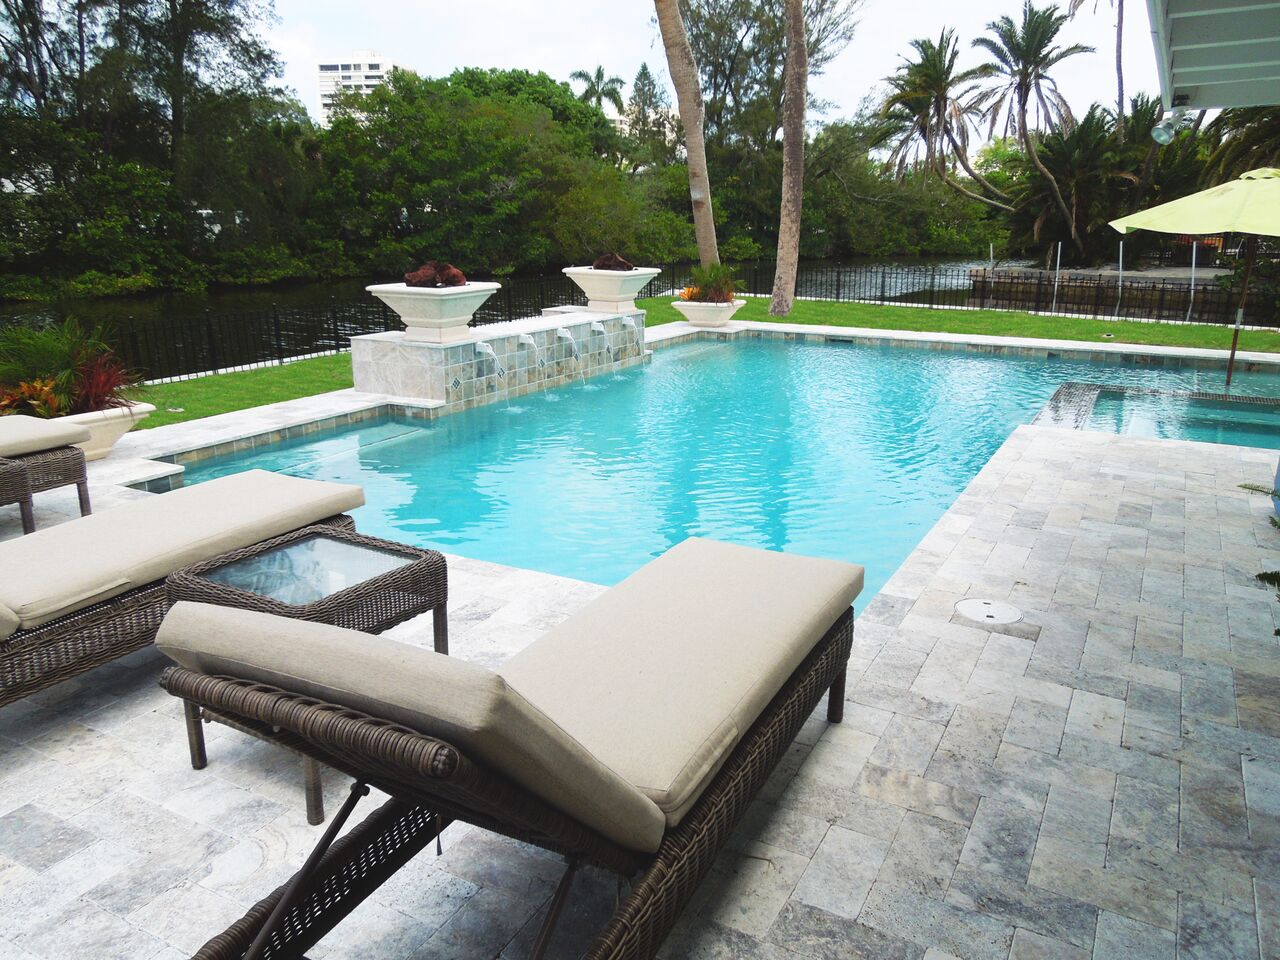 Transferring Pool Ownership after Construction